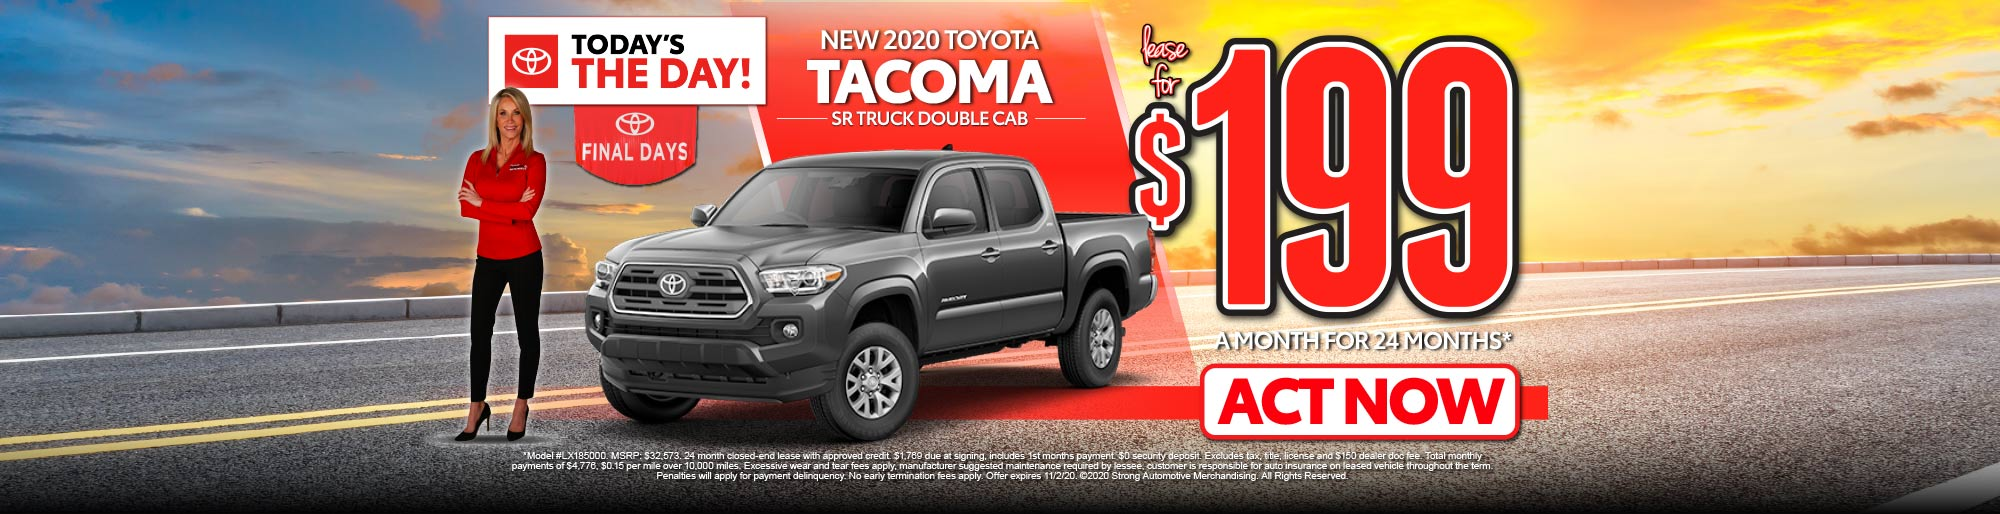 LEASE A NEW 2020 TACOMA SR TRUCK DOUBLE CAB FOR $199/MO* - ACT NOW